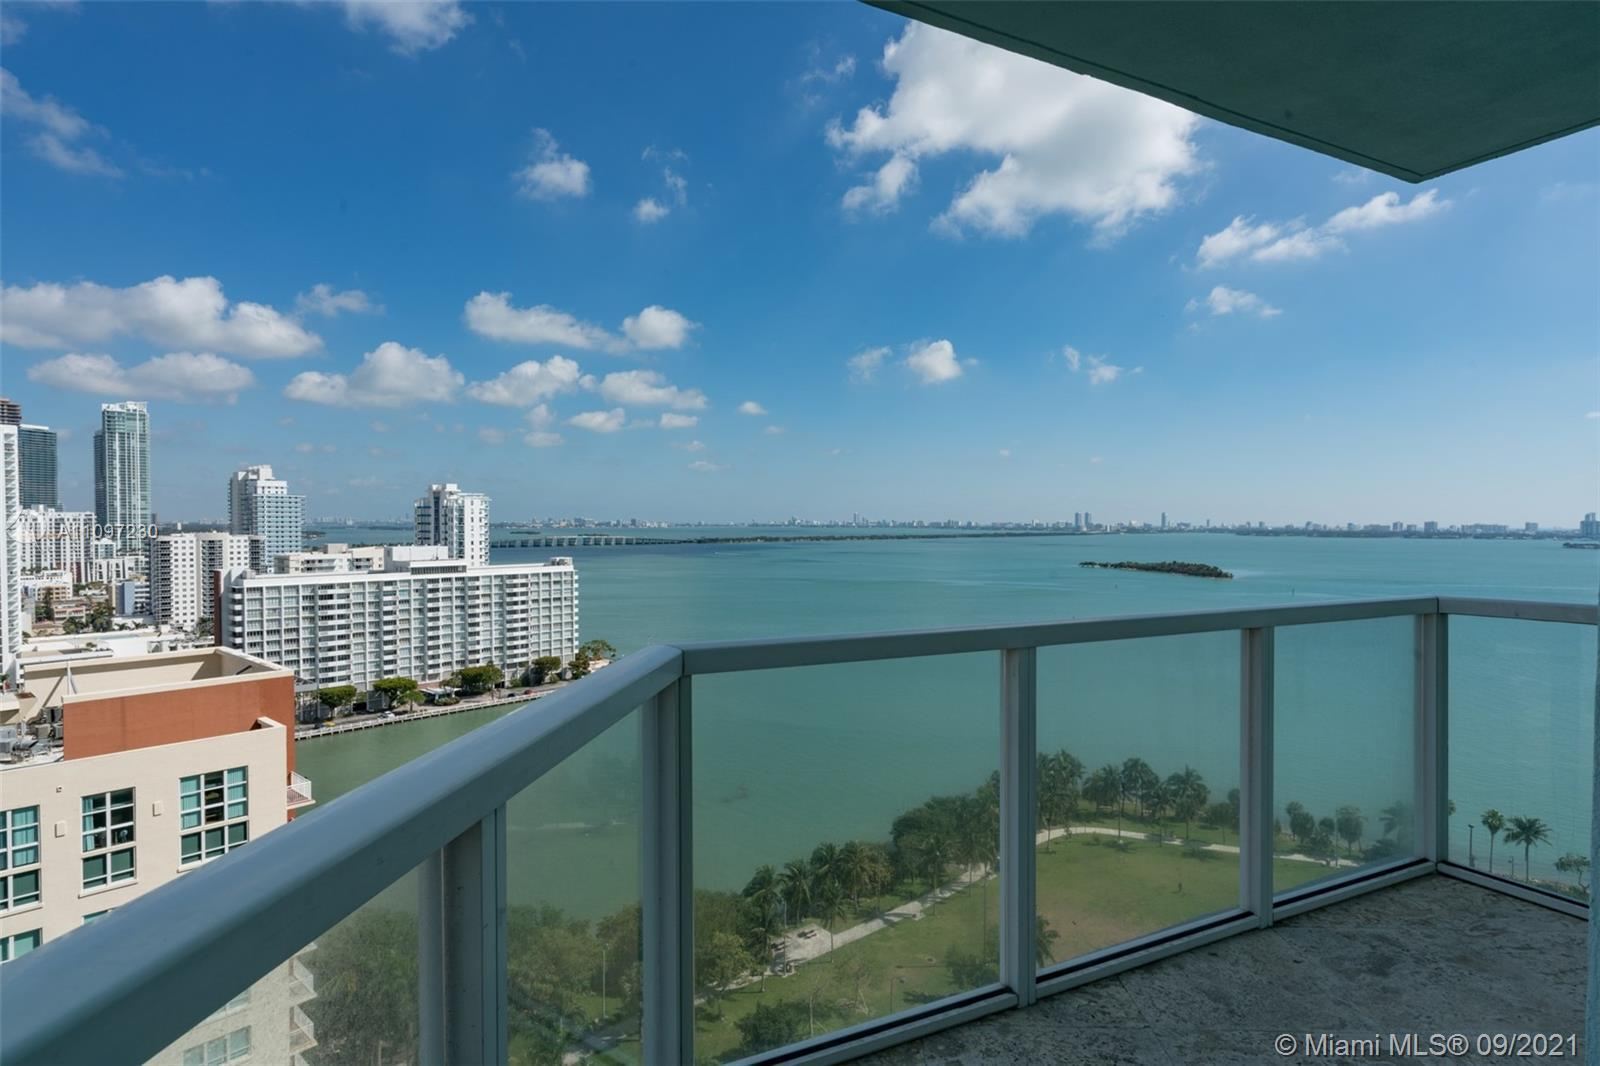 GREAT OPPORTUNITY TO OWN A FULL 3 BEDROOMS AND 3 BATHS AT THE SOUGHT AFTER QUANTUM ON THE BAY. THIS